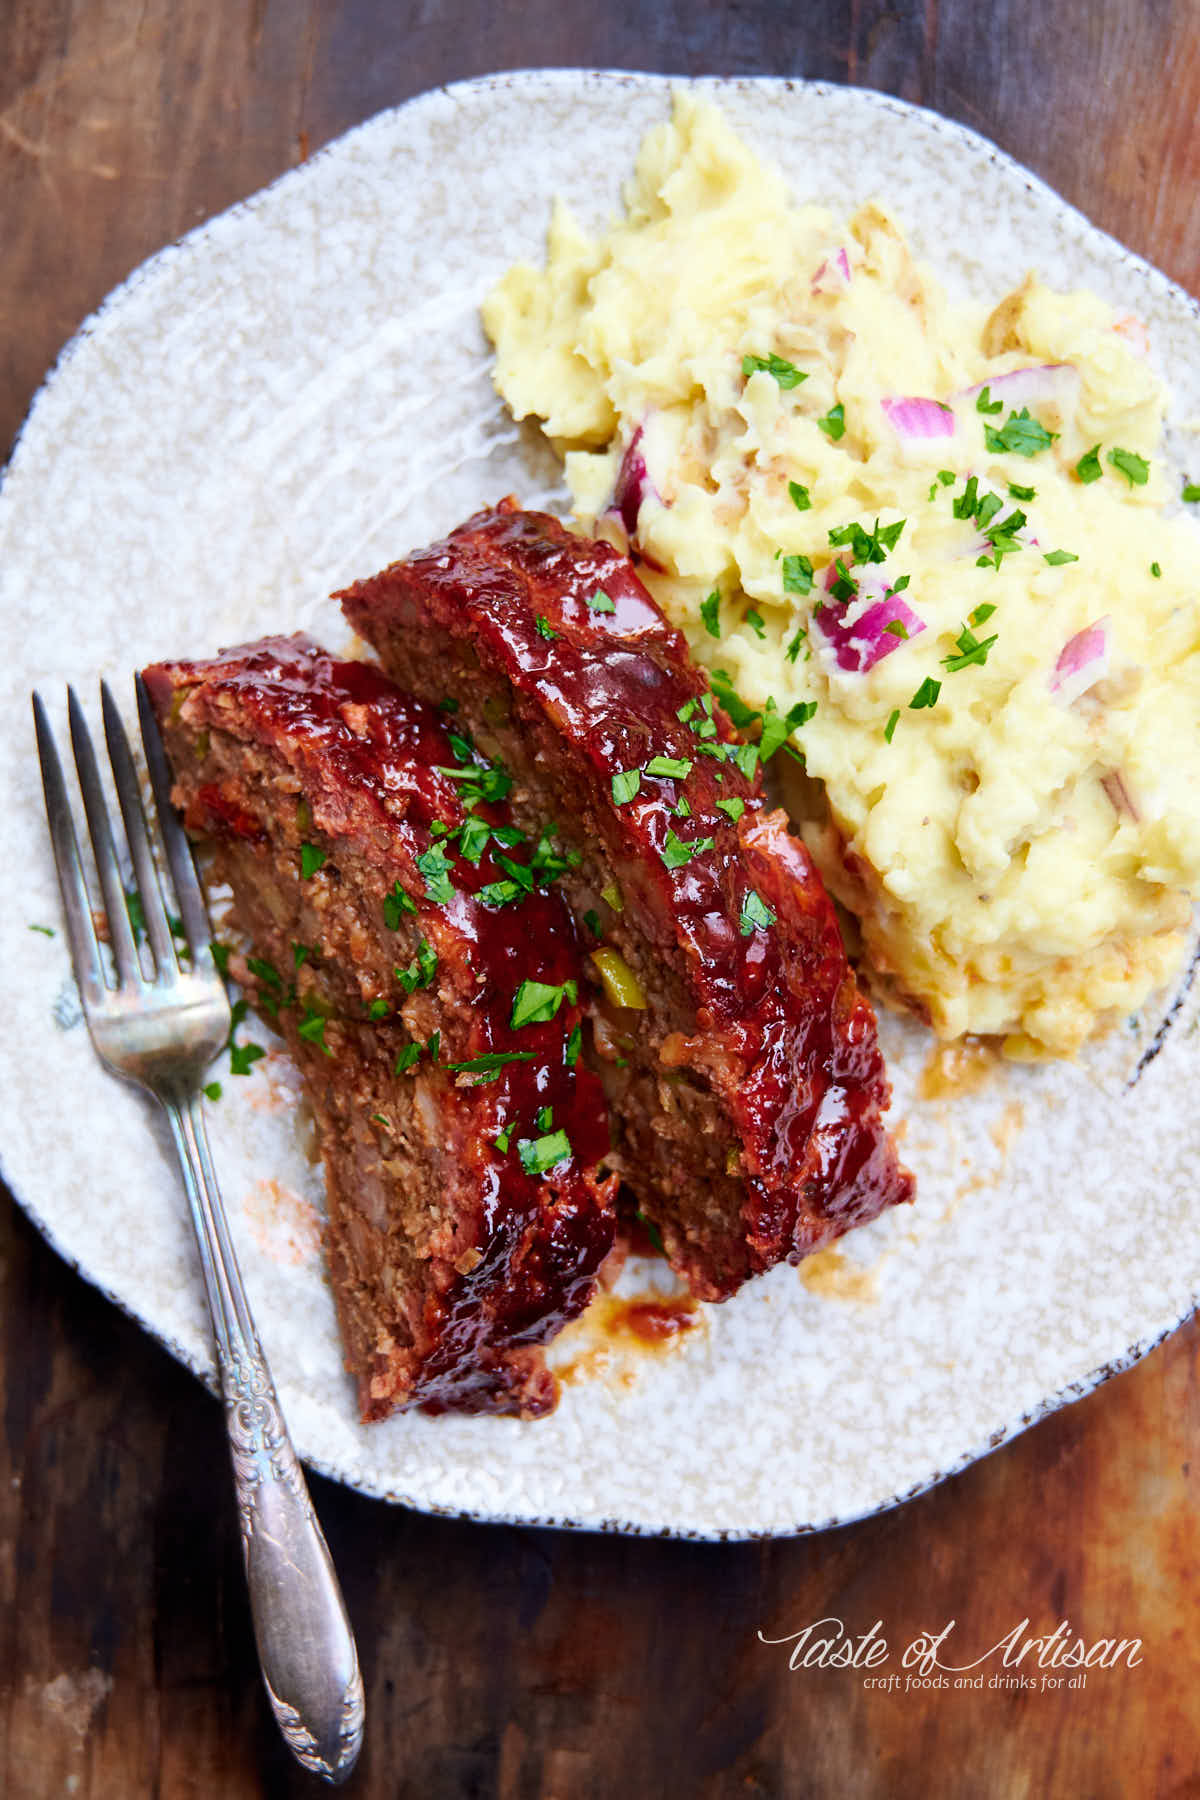 Smoked meatloaf slices on a plate with a fork and mashed potatoes.